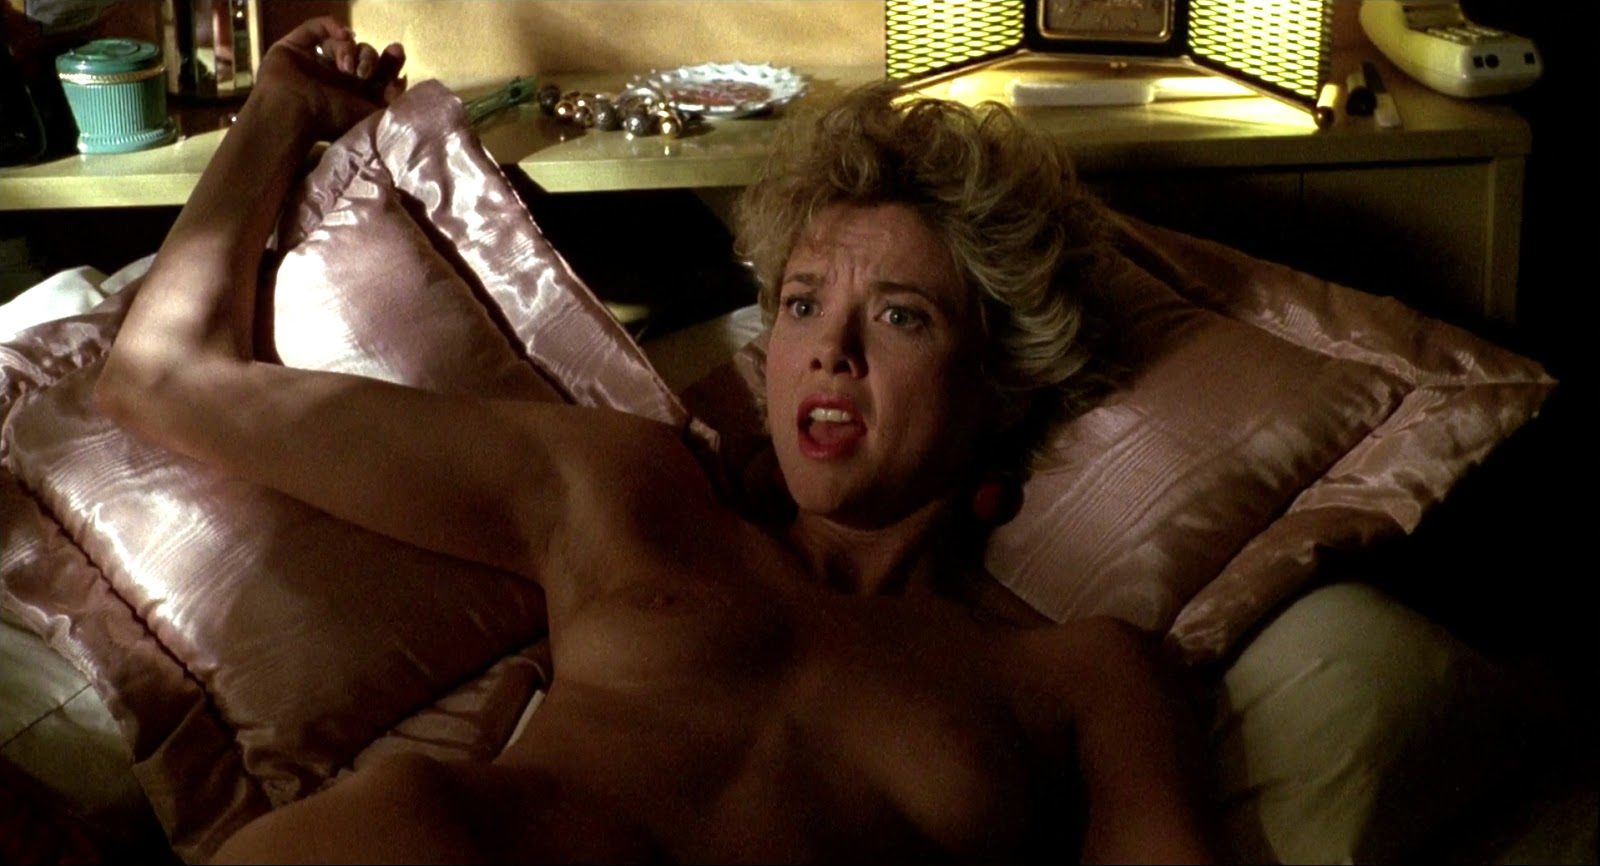 Apologise, Annette bening nude fakes with you